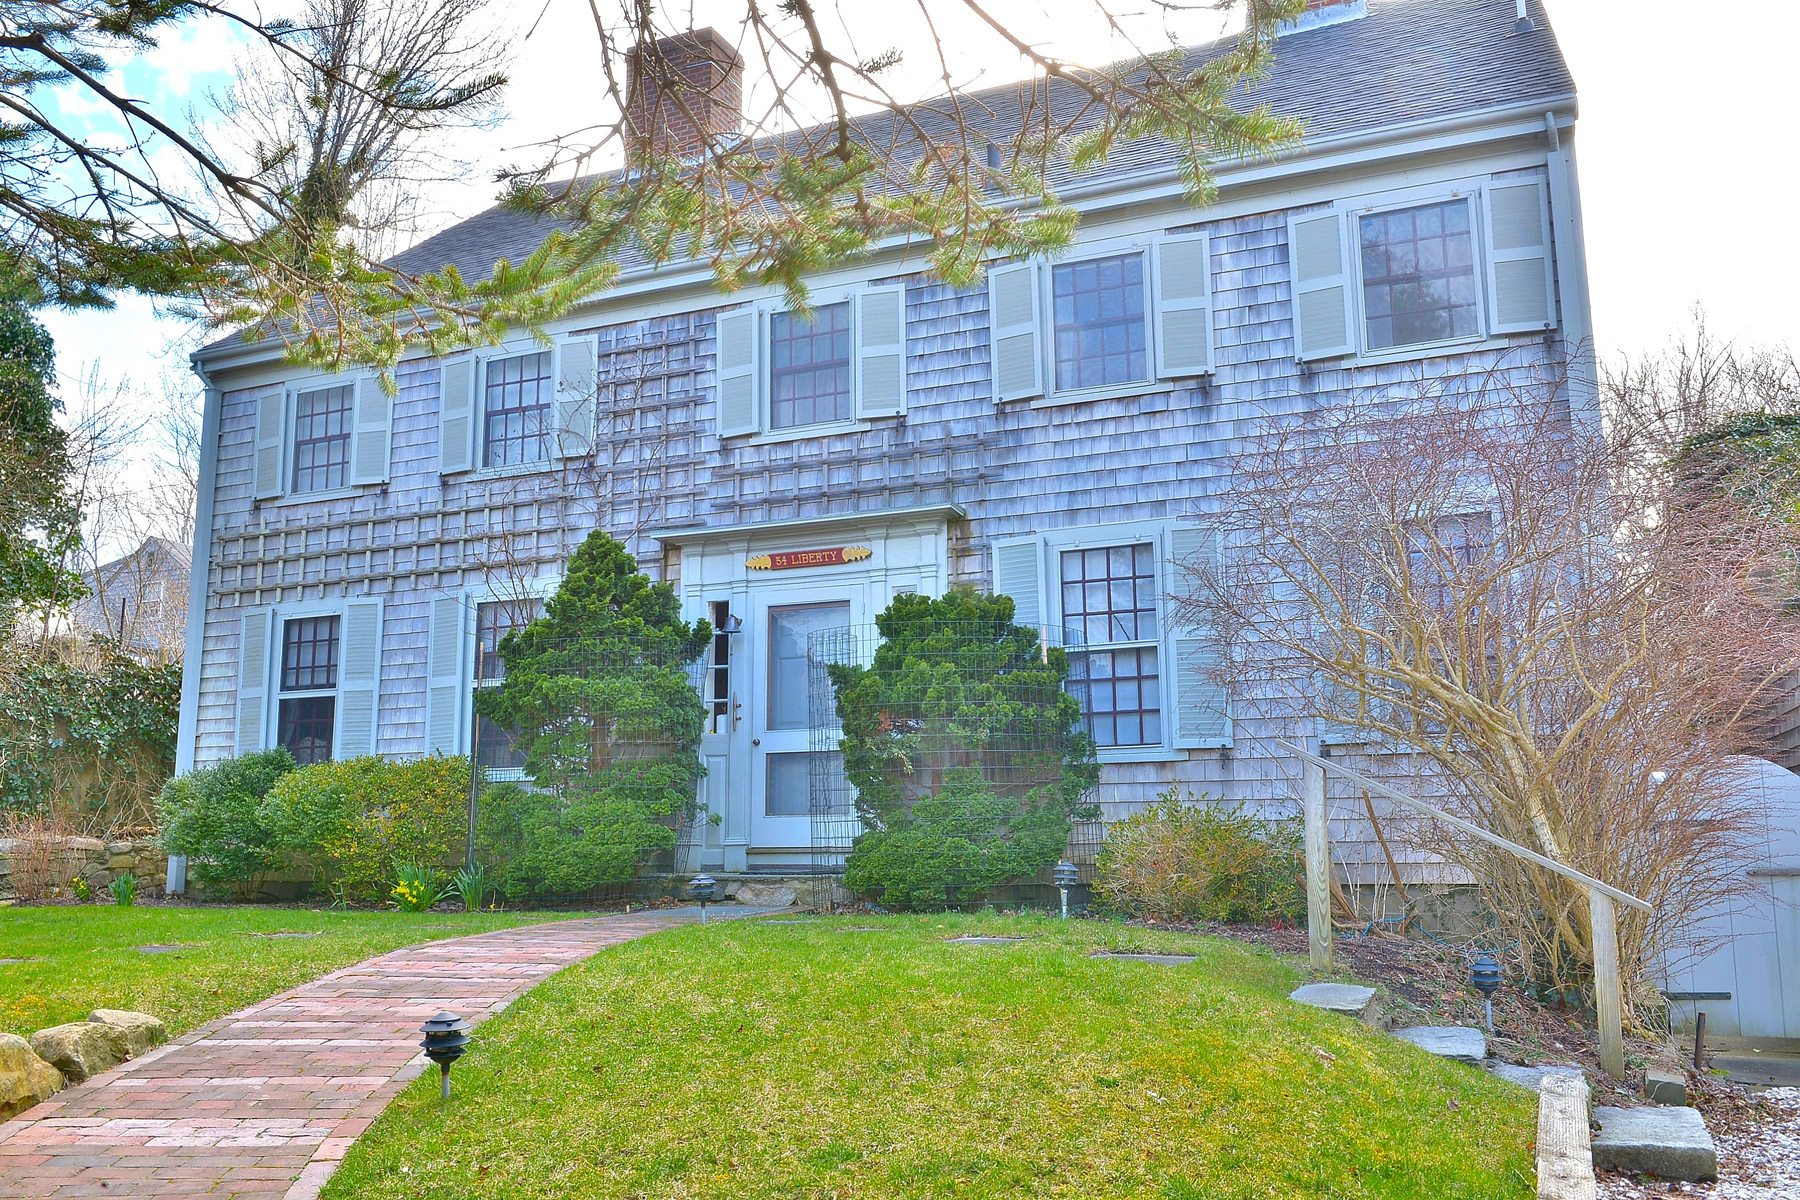 단독 가정 주택 용 매매 에 A Magical Property in Historic Downtown Nantucket 34 Liberty Street Nantucket, 매사추세츠, 02554 미국